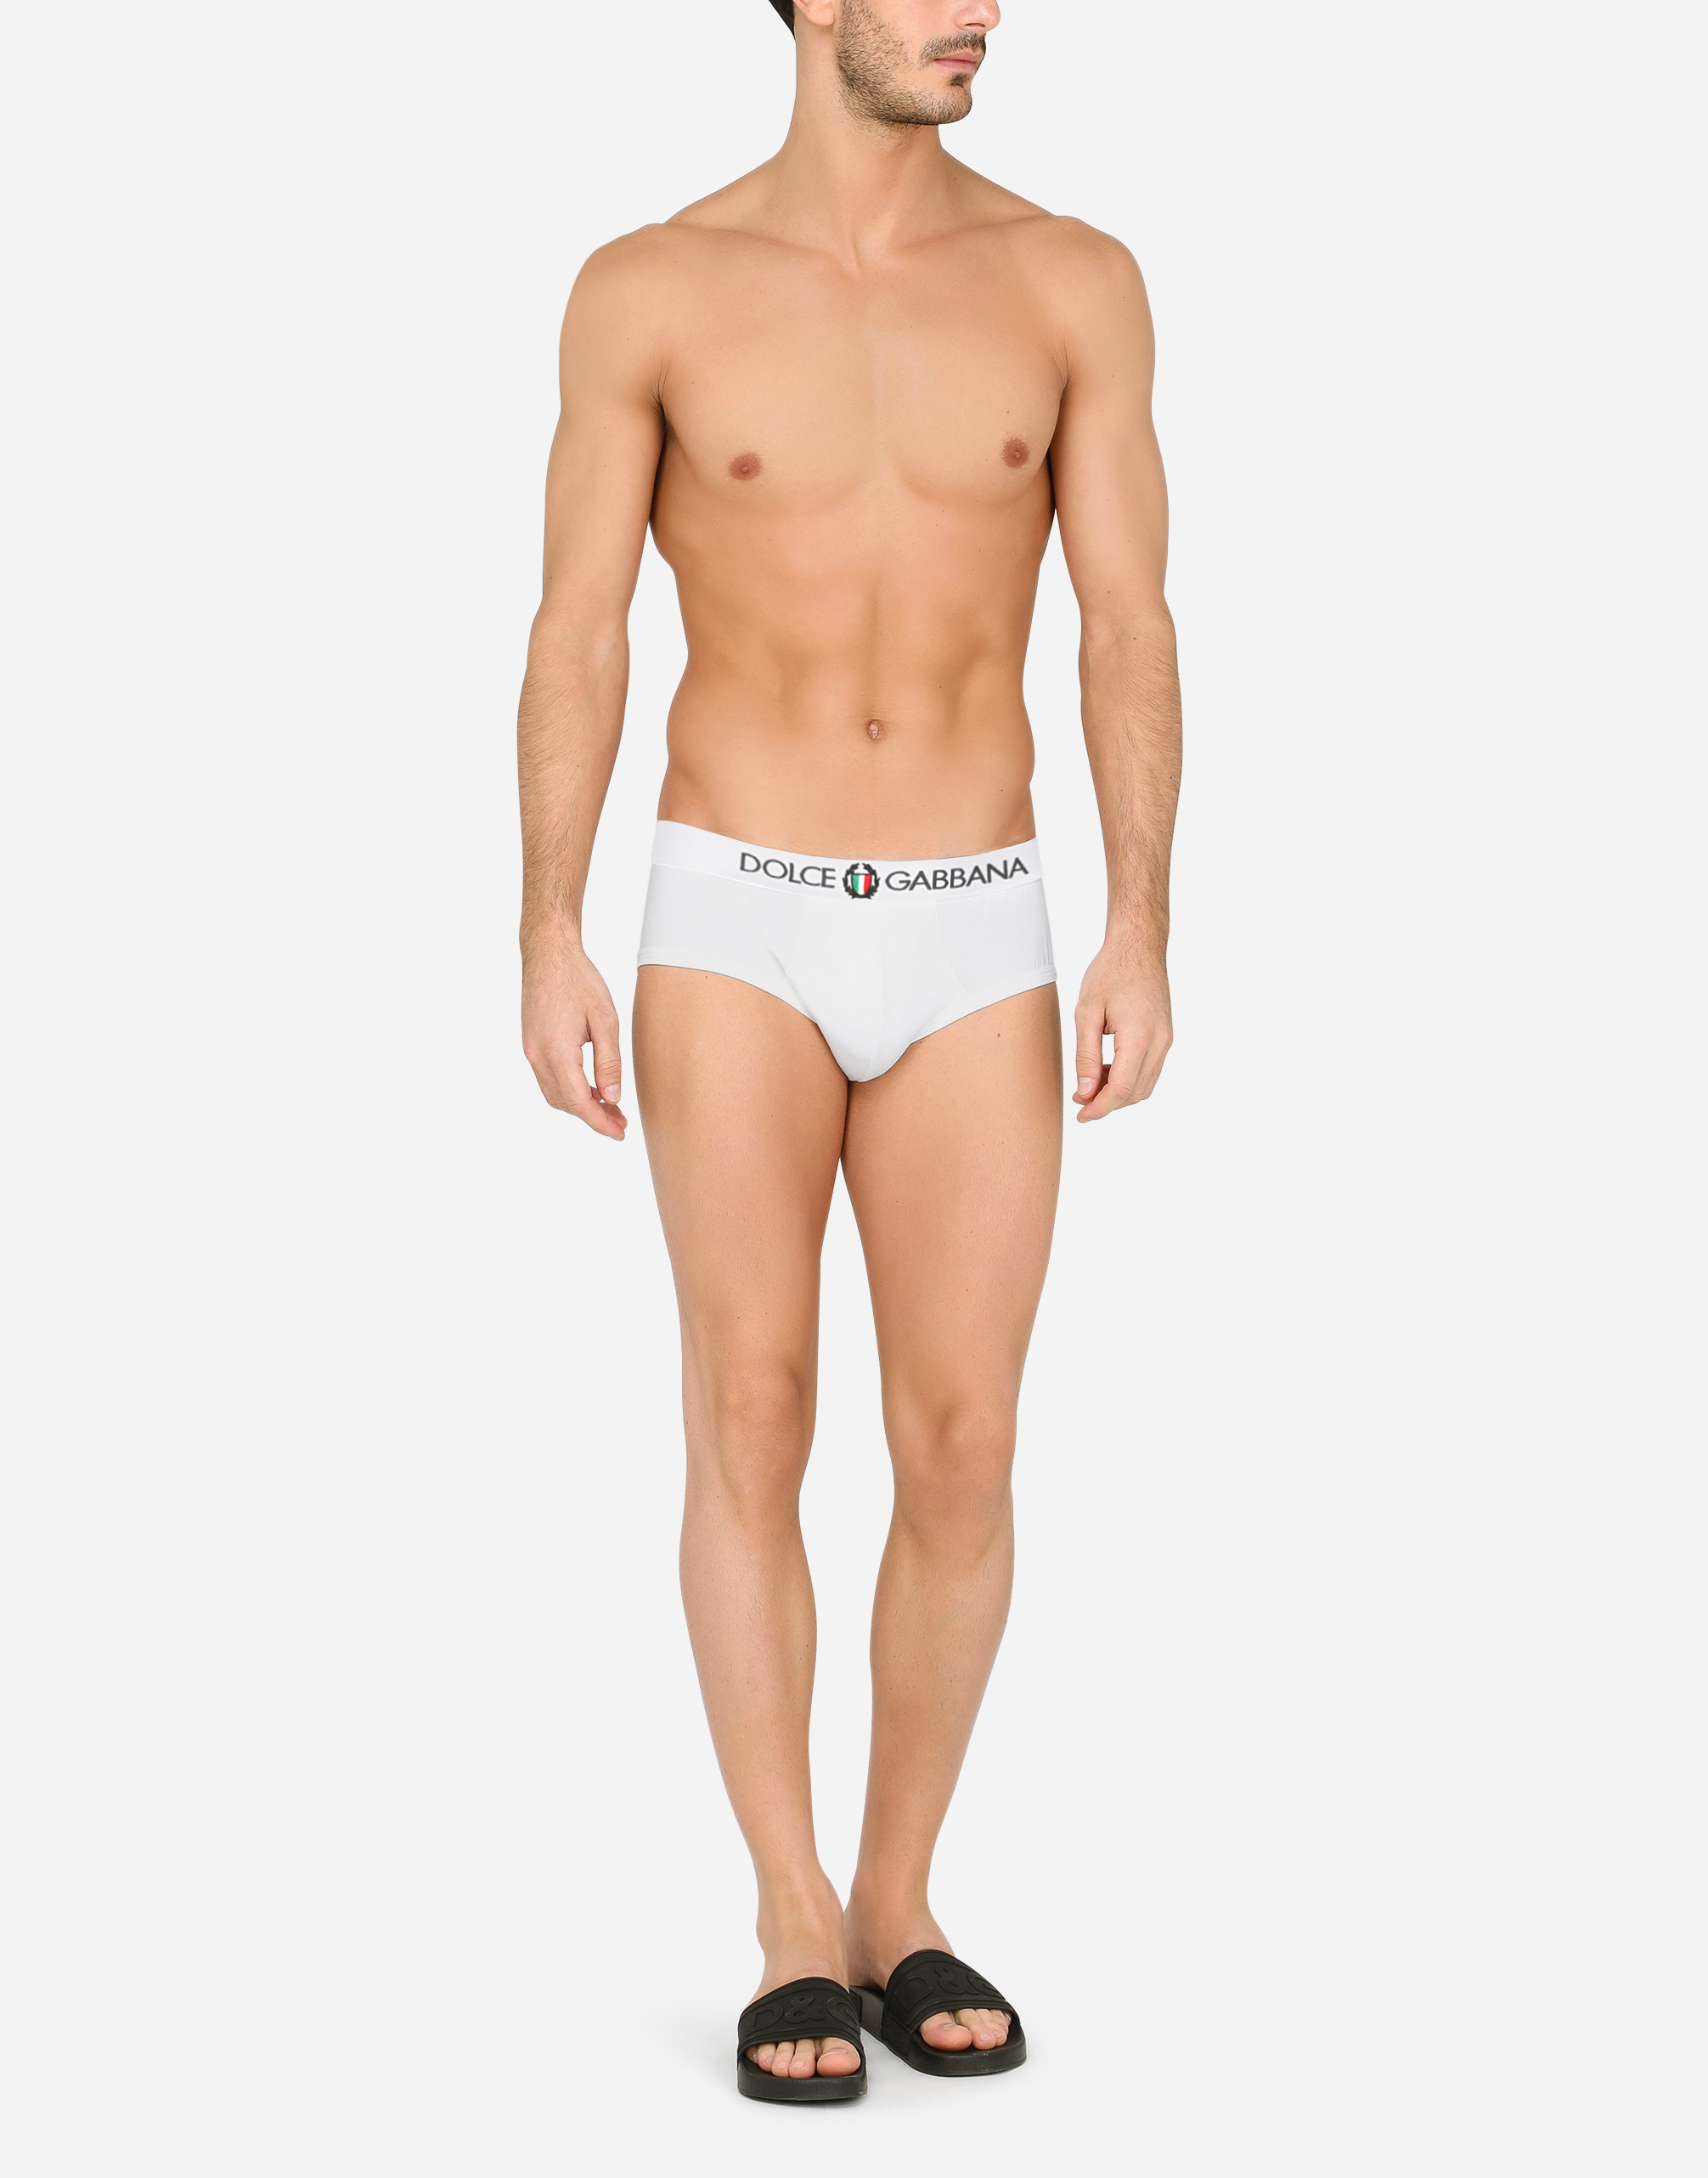 Dolce & Gabbana BRANDO BRIEFS IN COTTON JERSEY